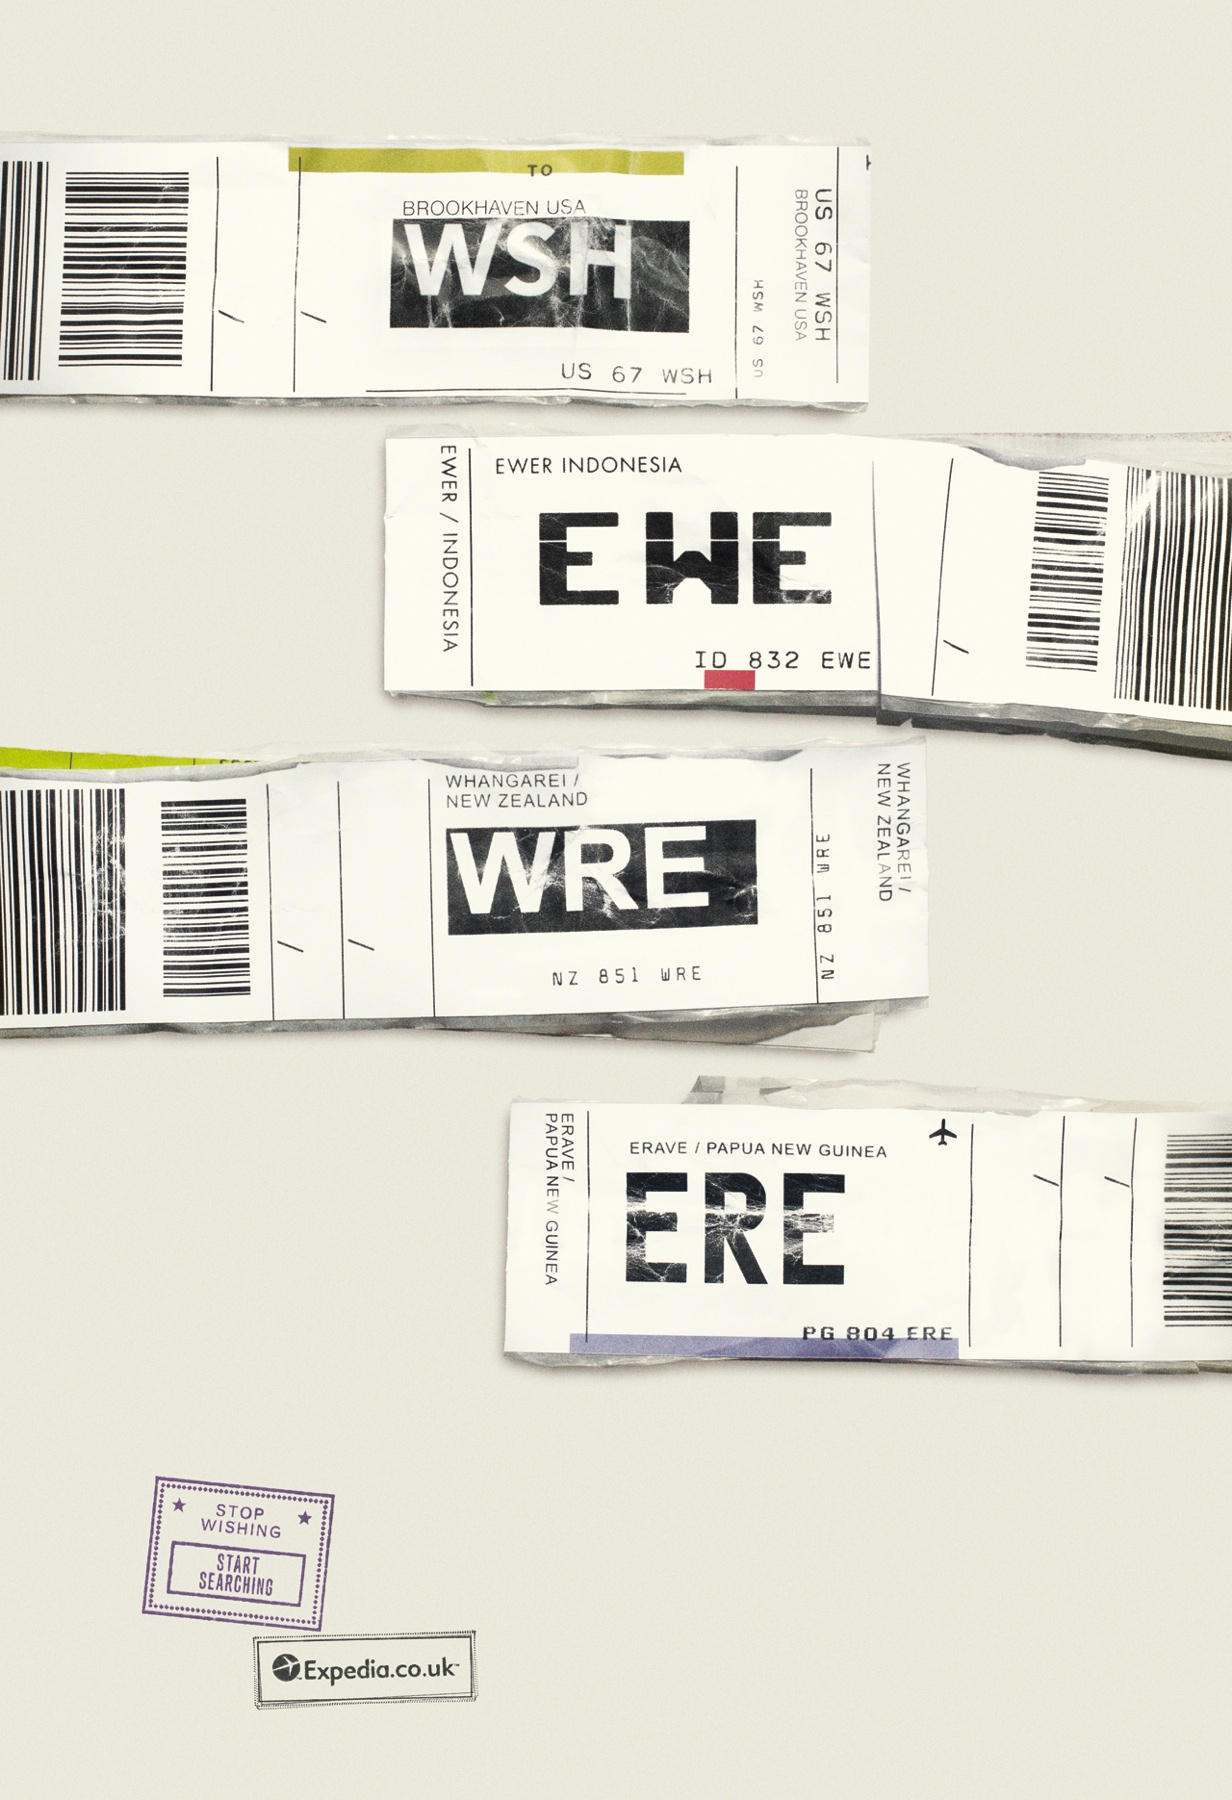 Expedia_baggage_tag_ad_Jan_2013_WSH_EWE_WRE_ERE